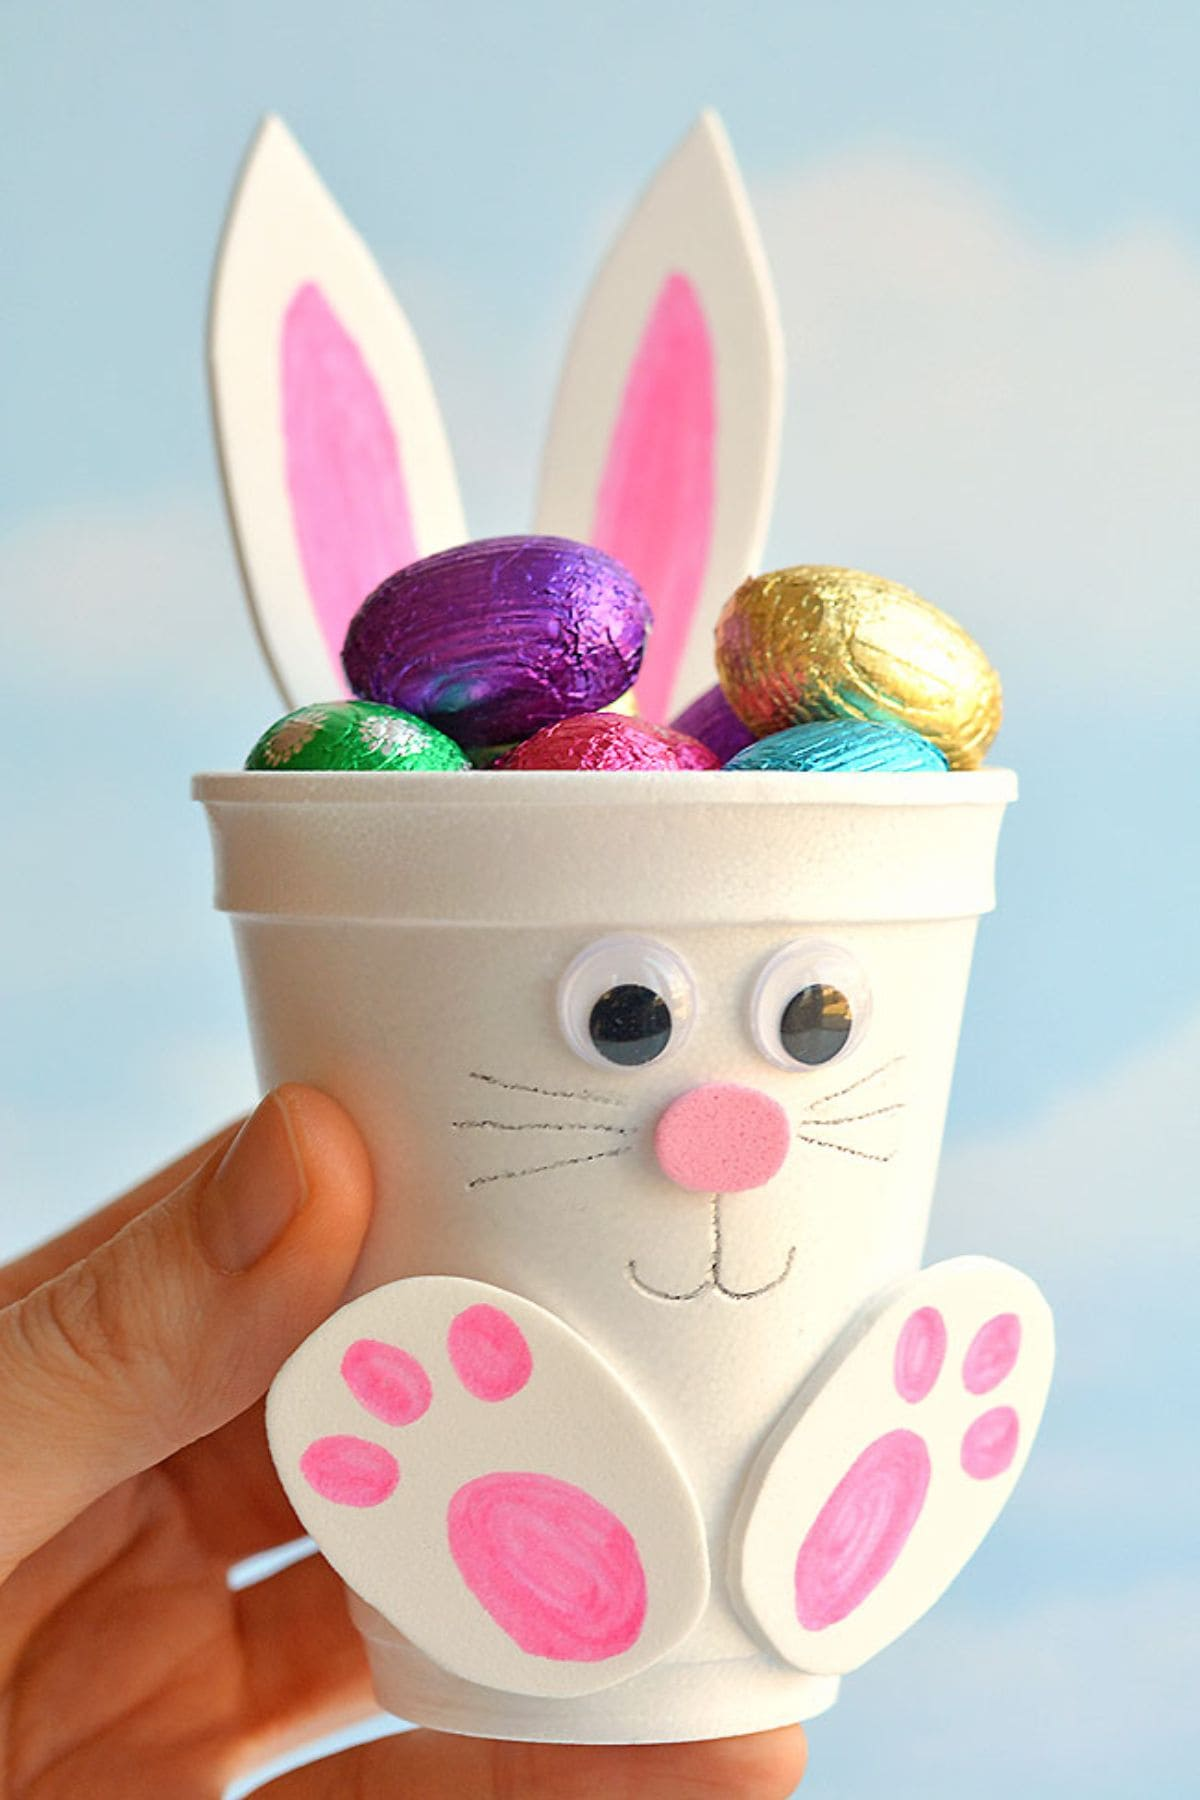 A hand holds a white foam cup decorated to look like a bunny with foil-covered chocolate eggs inside